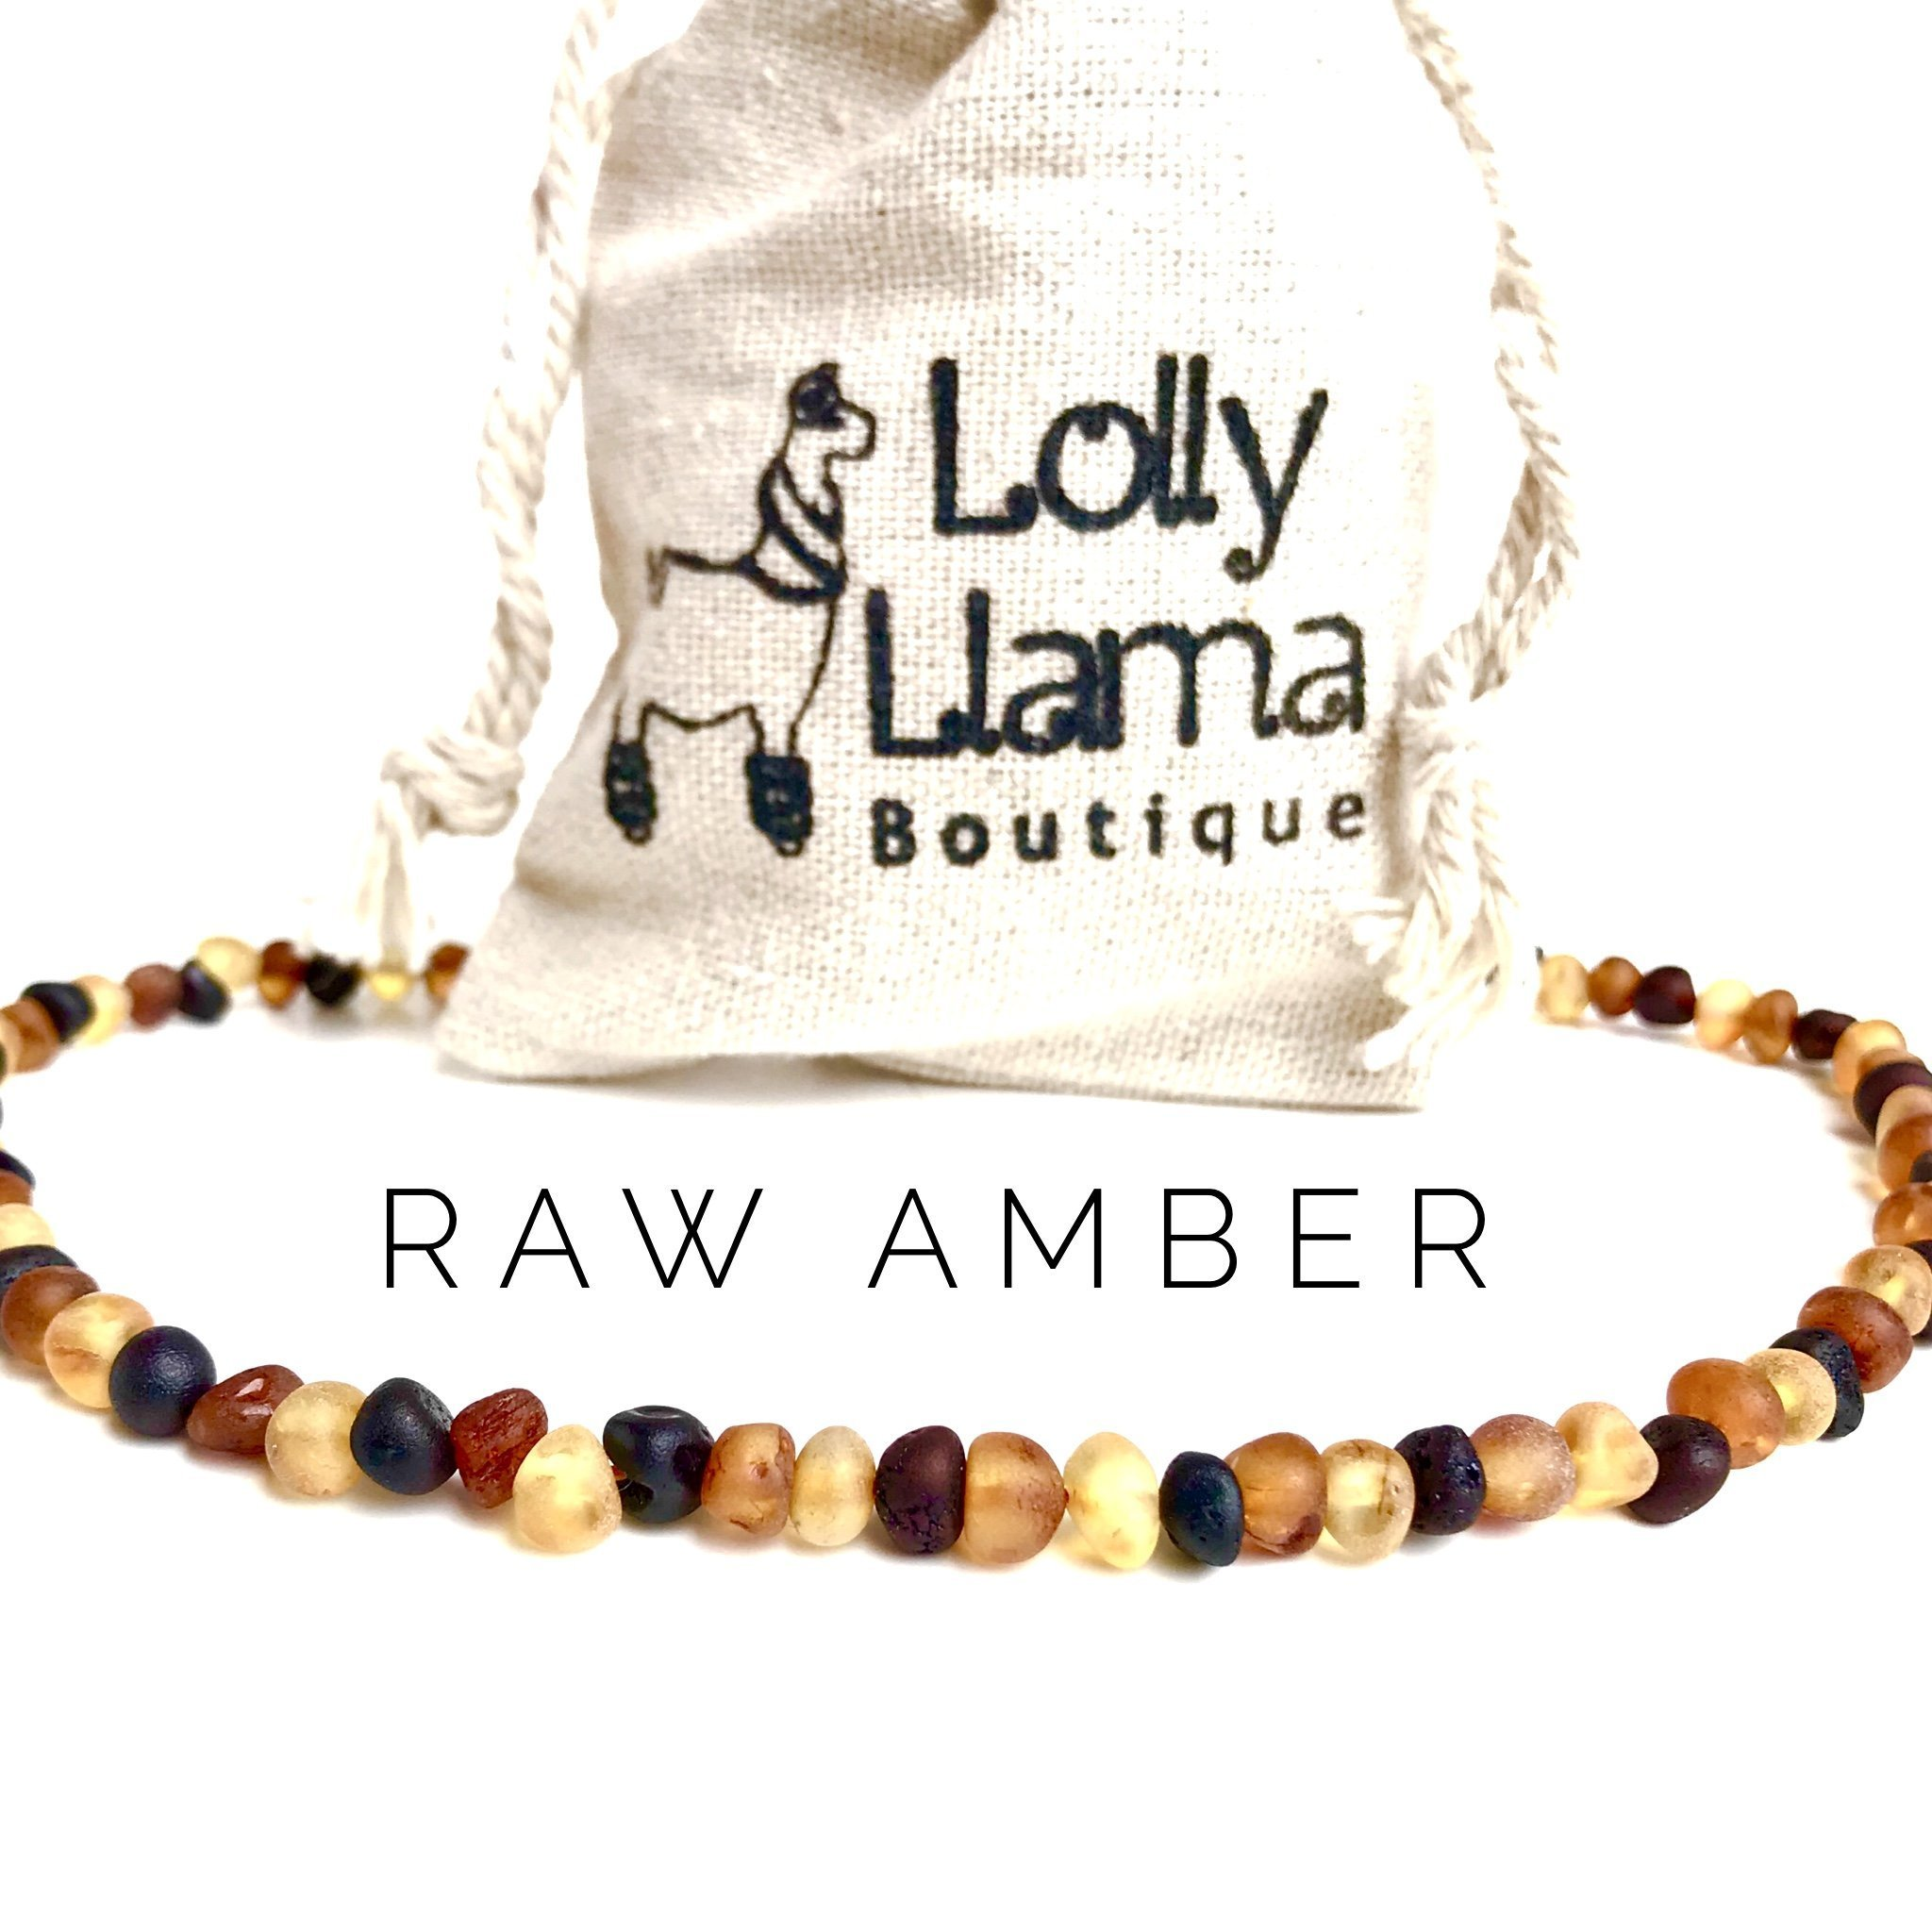 Adult Raw Baroque Baltic Amber Necklace - All Natural Pain Relief for Adults to Help Migraines, Sinus, Arthritis and More! - Multi-Stone